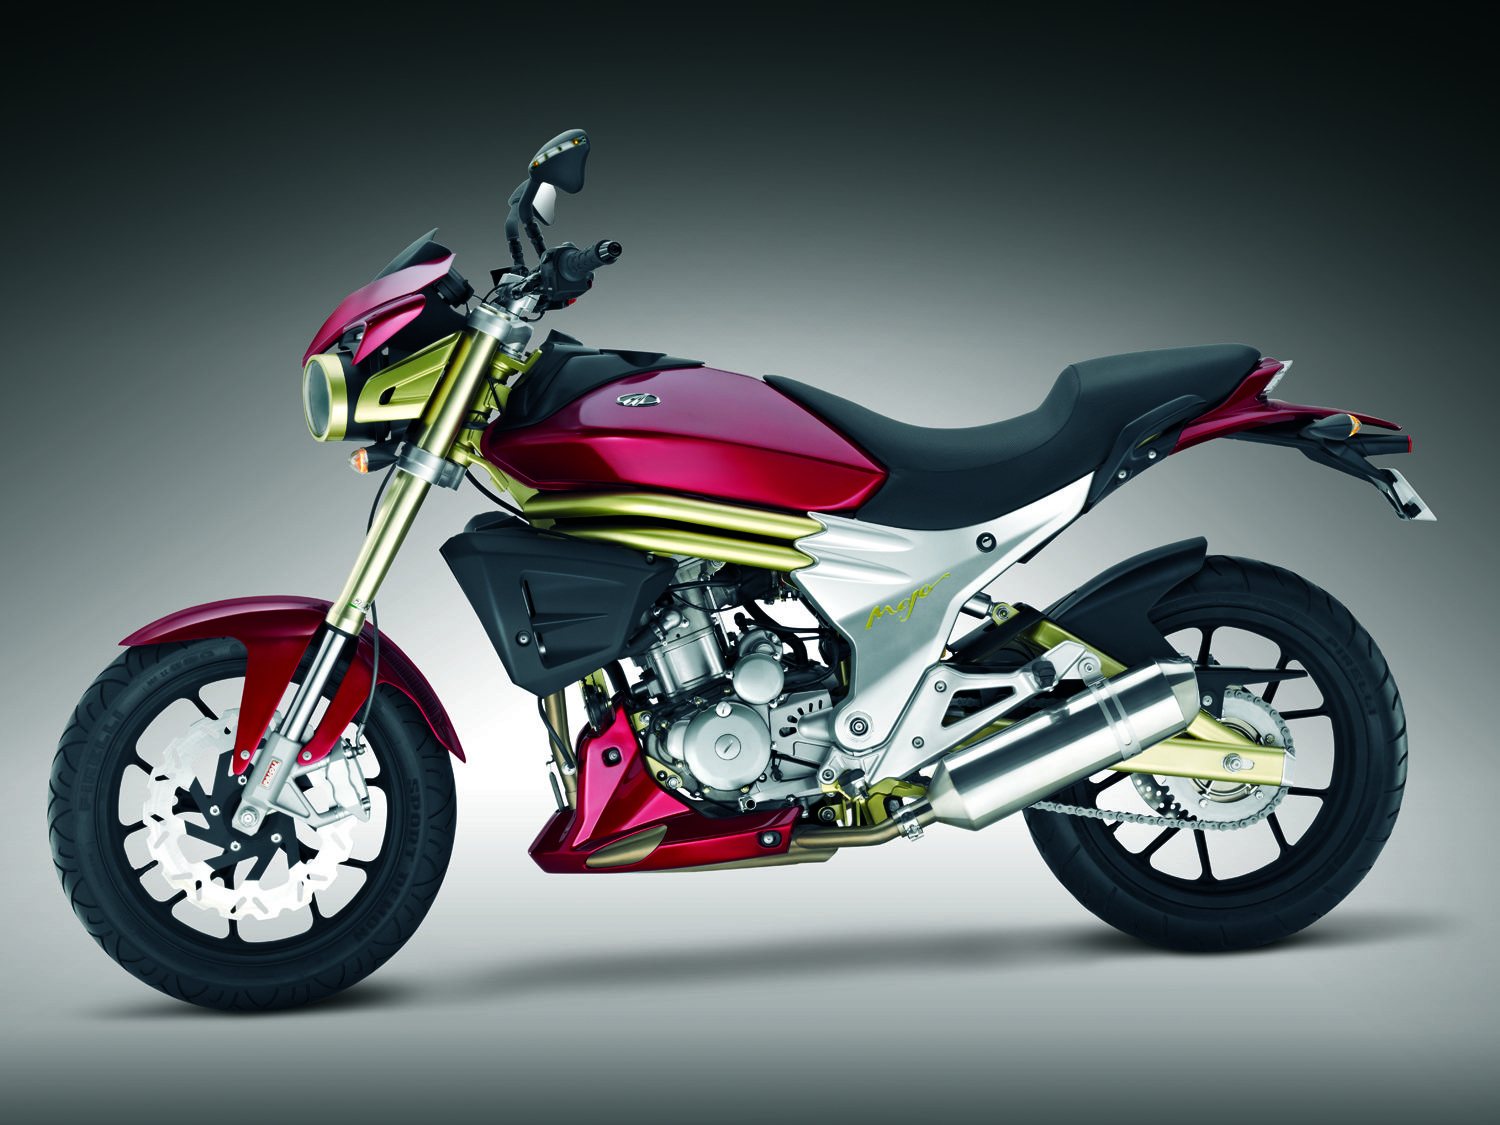 Mahindra Mojo 300 Launching Very Soon Official (With